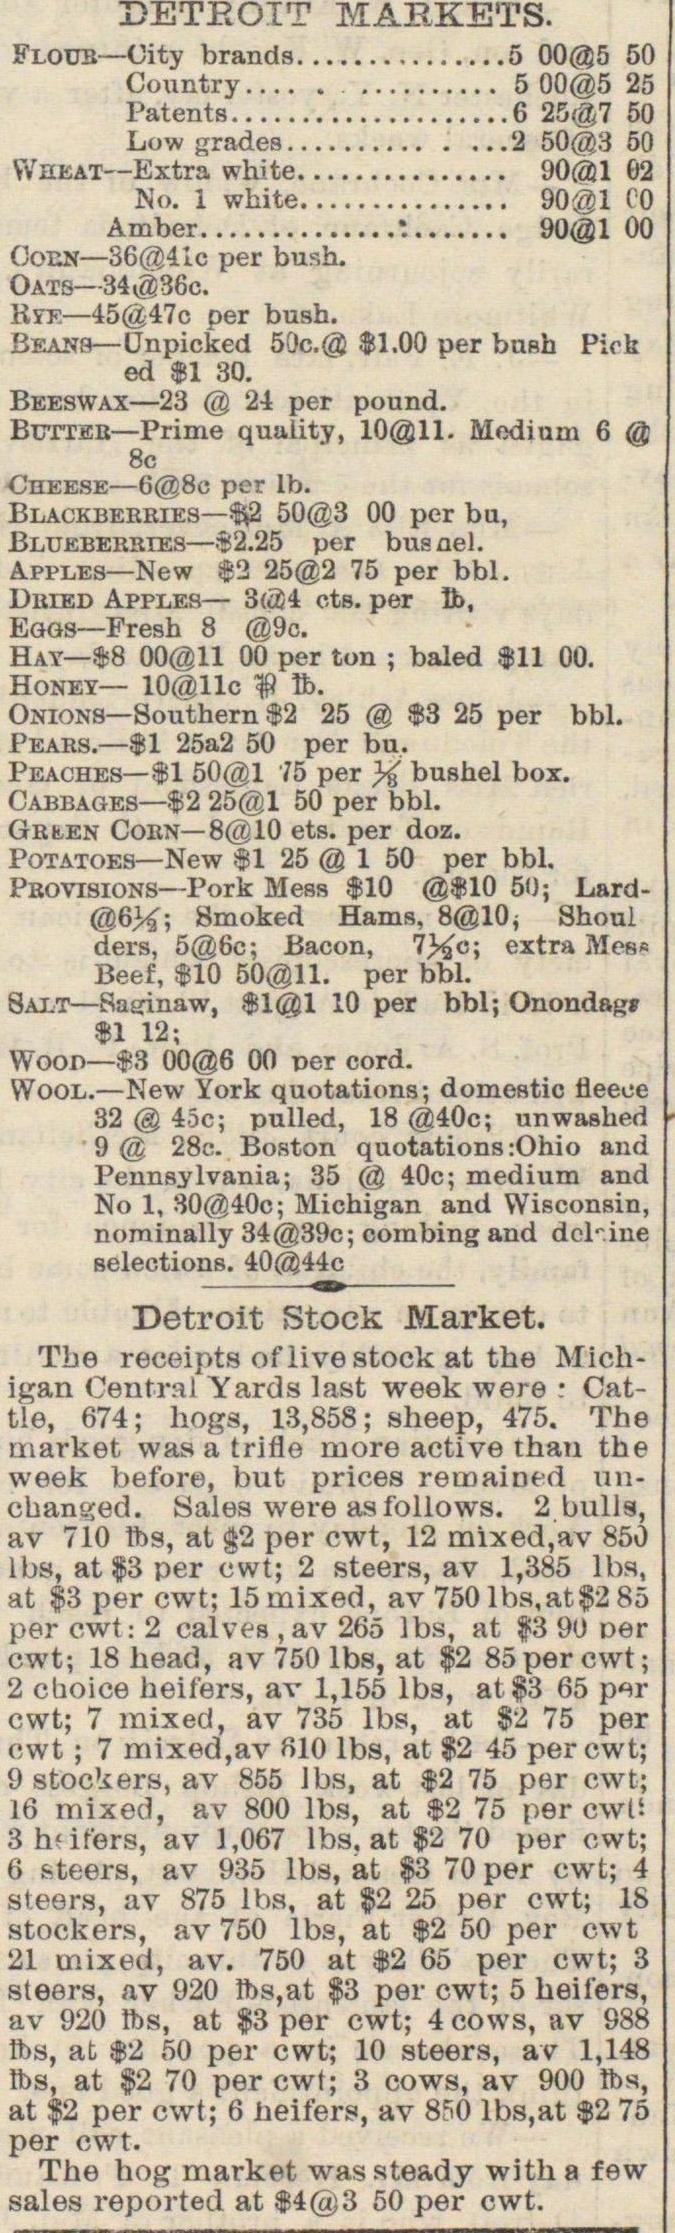 Detroit Markets image